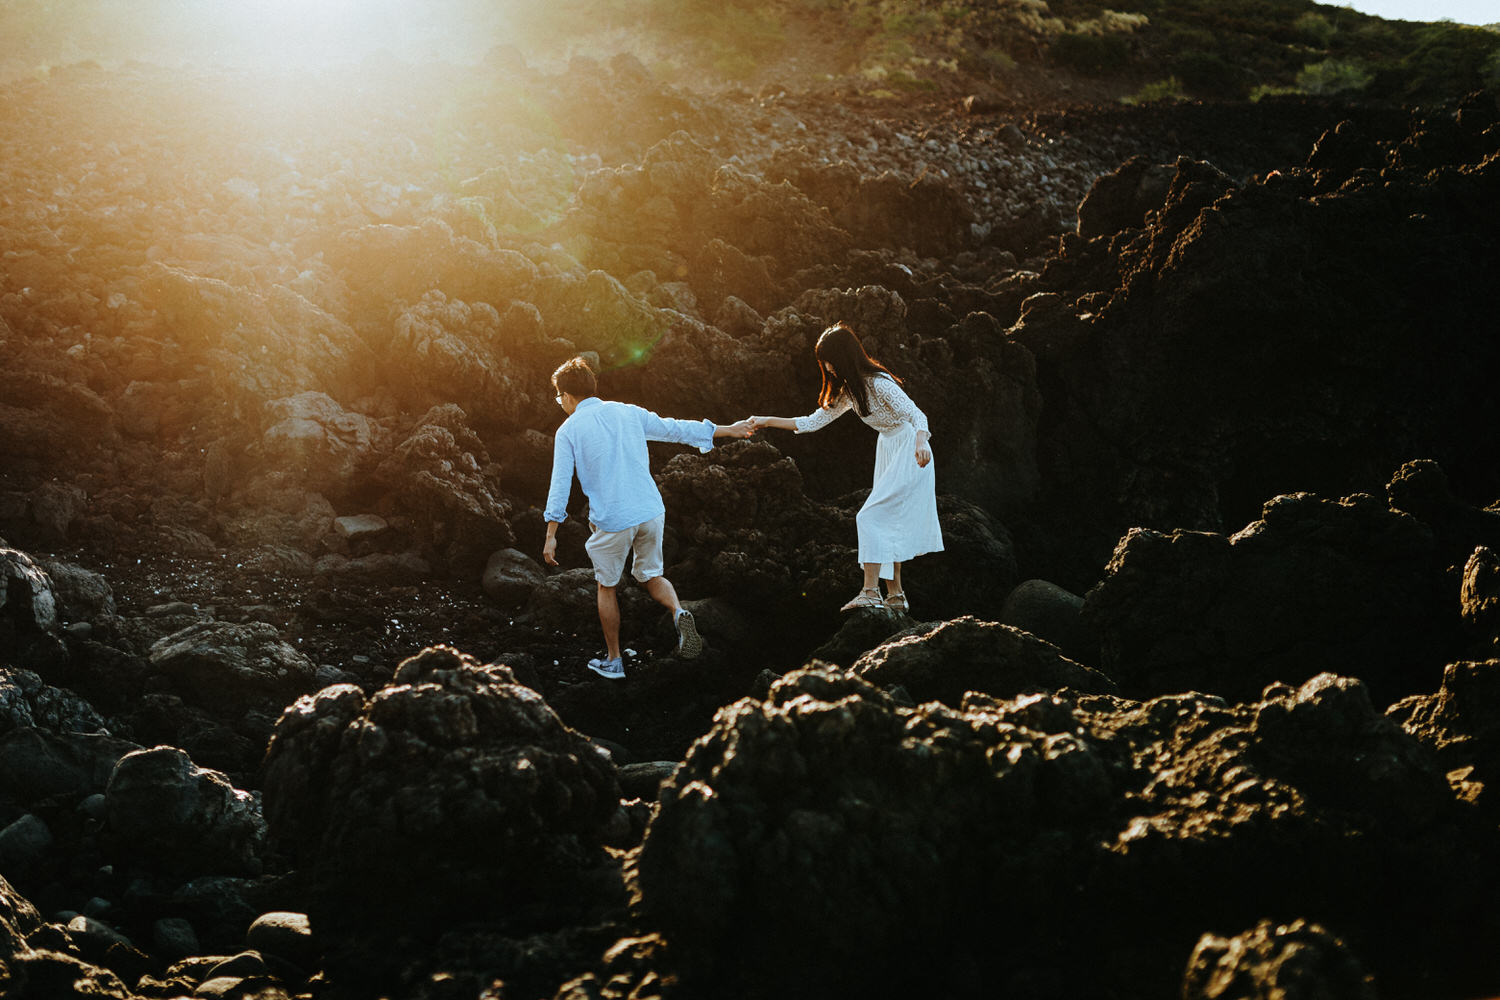 hawaii photography, hawaii photographers, hawaii engagement